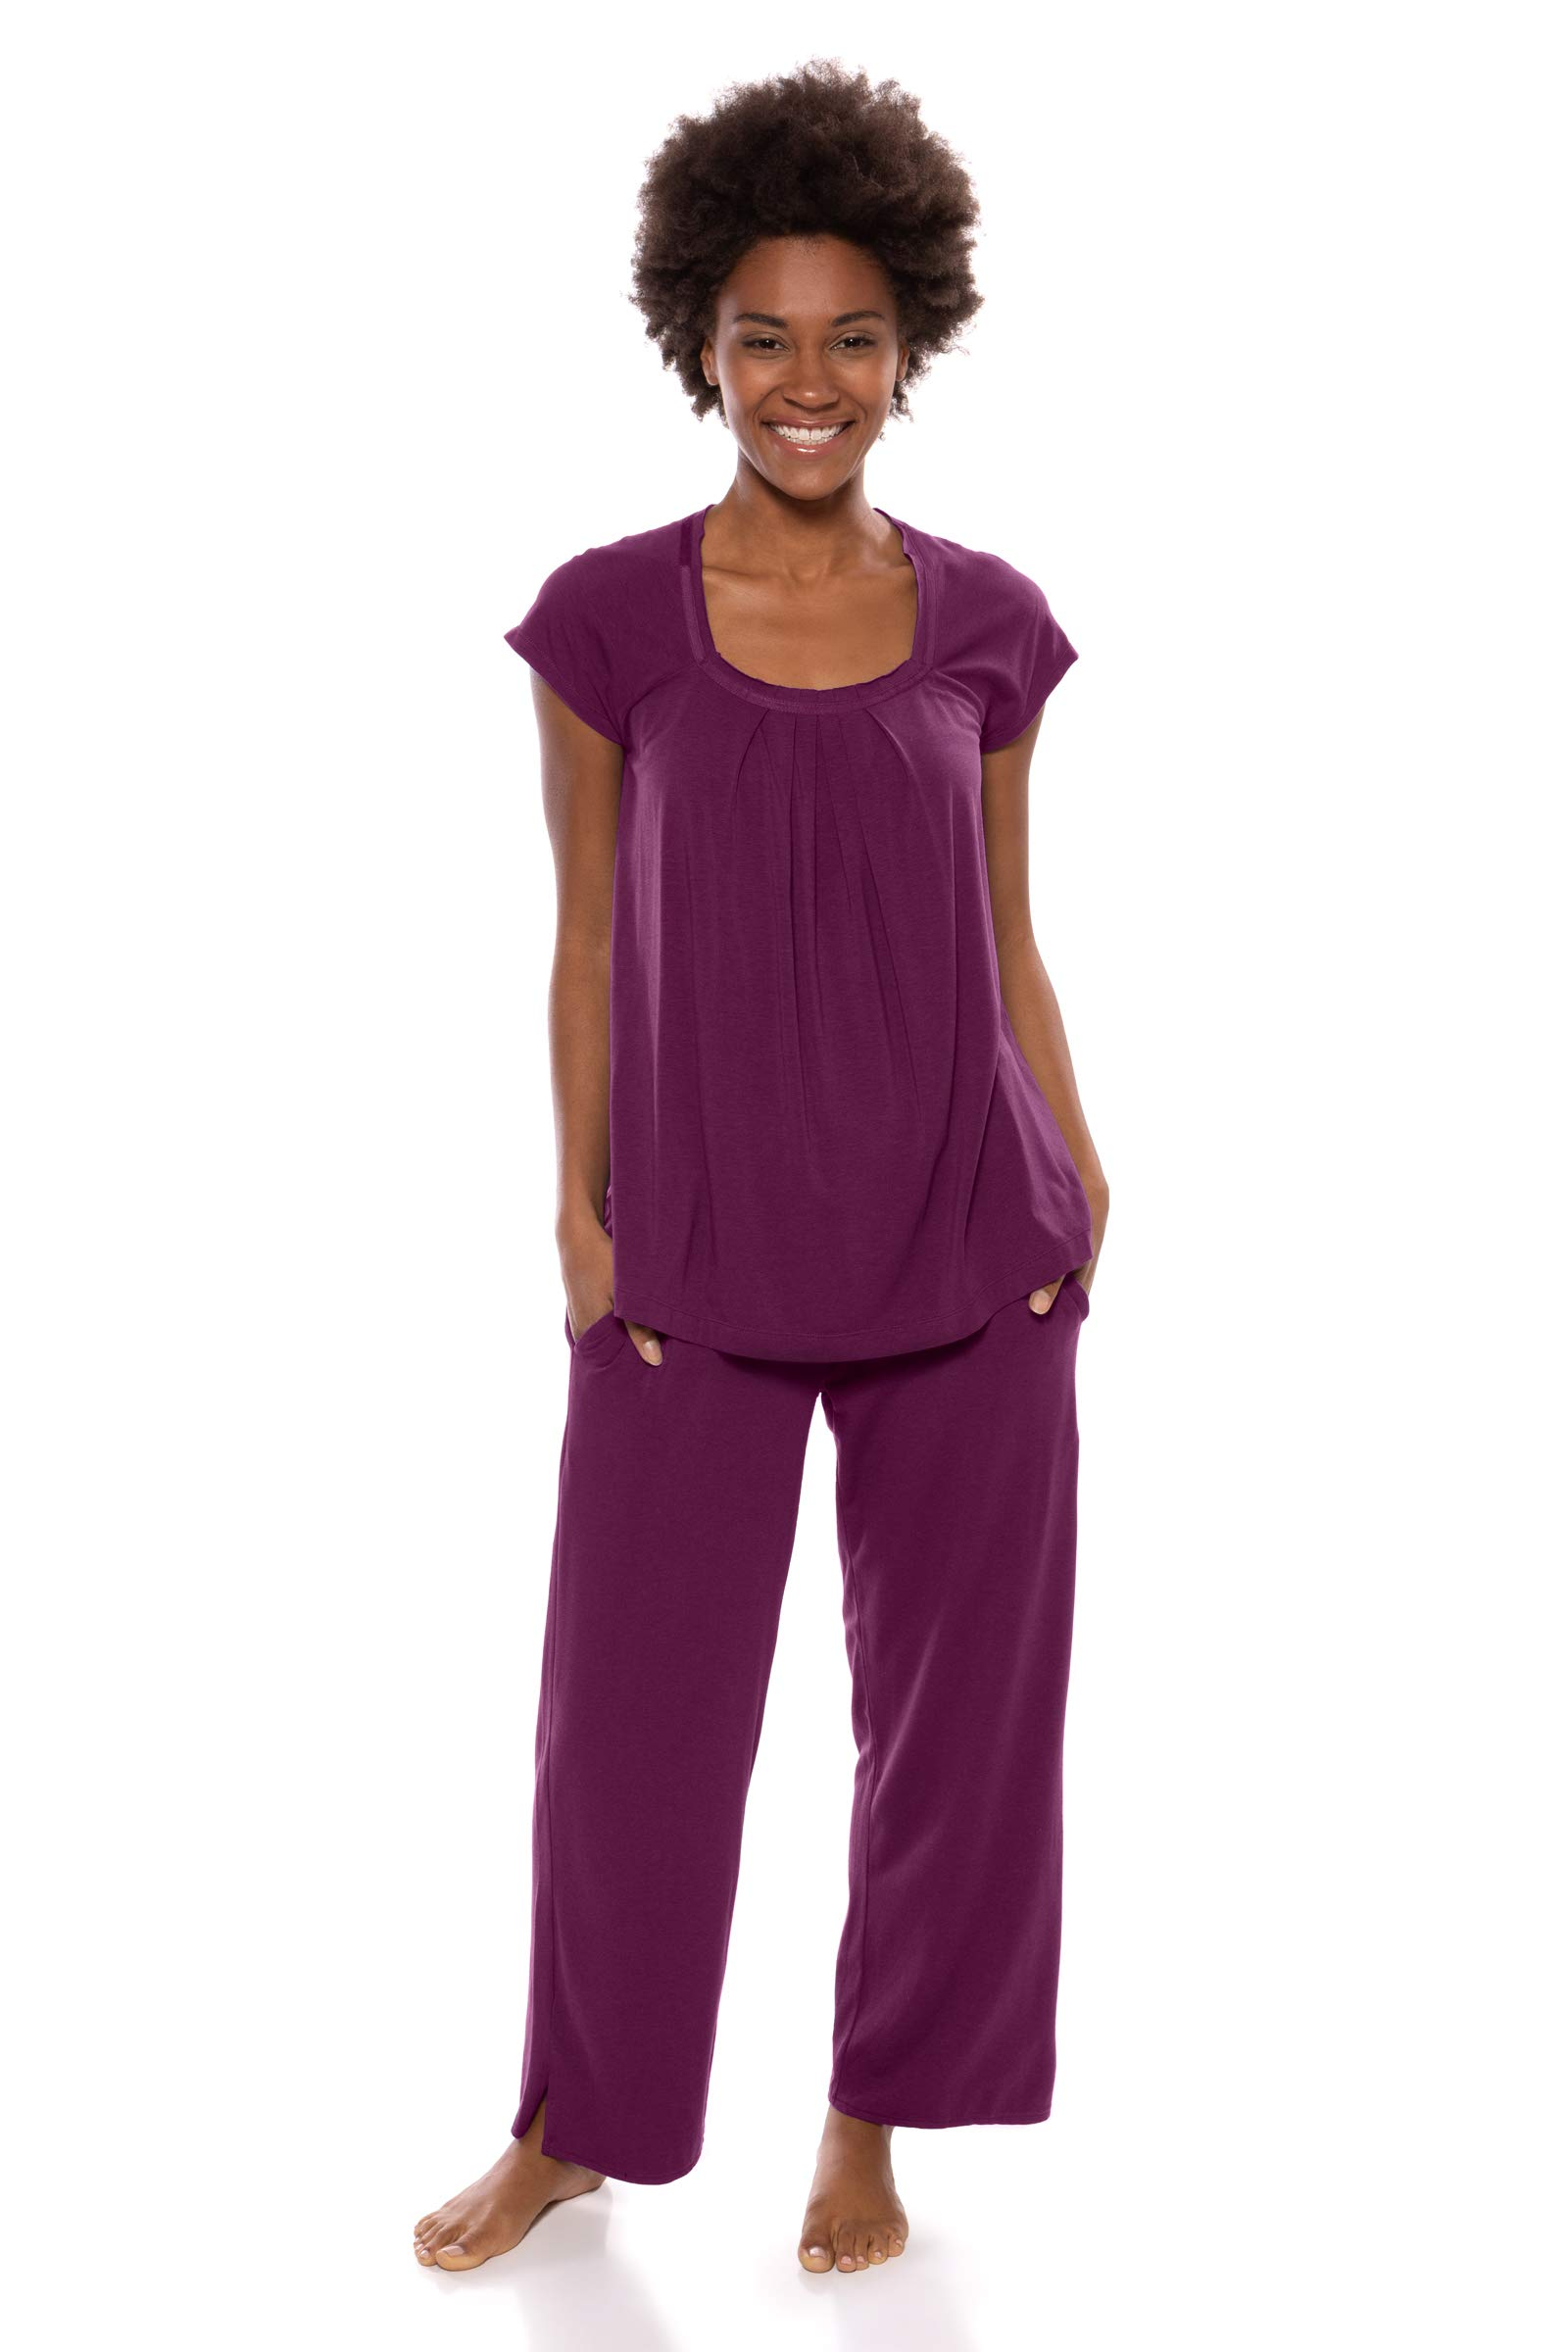 4c79c45f99 Women s Pajamas in Bamboo Viscose (Bamboo Bliss) Cozy Sleepwear Set by  Texere